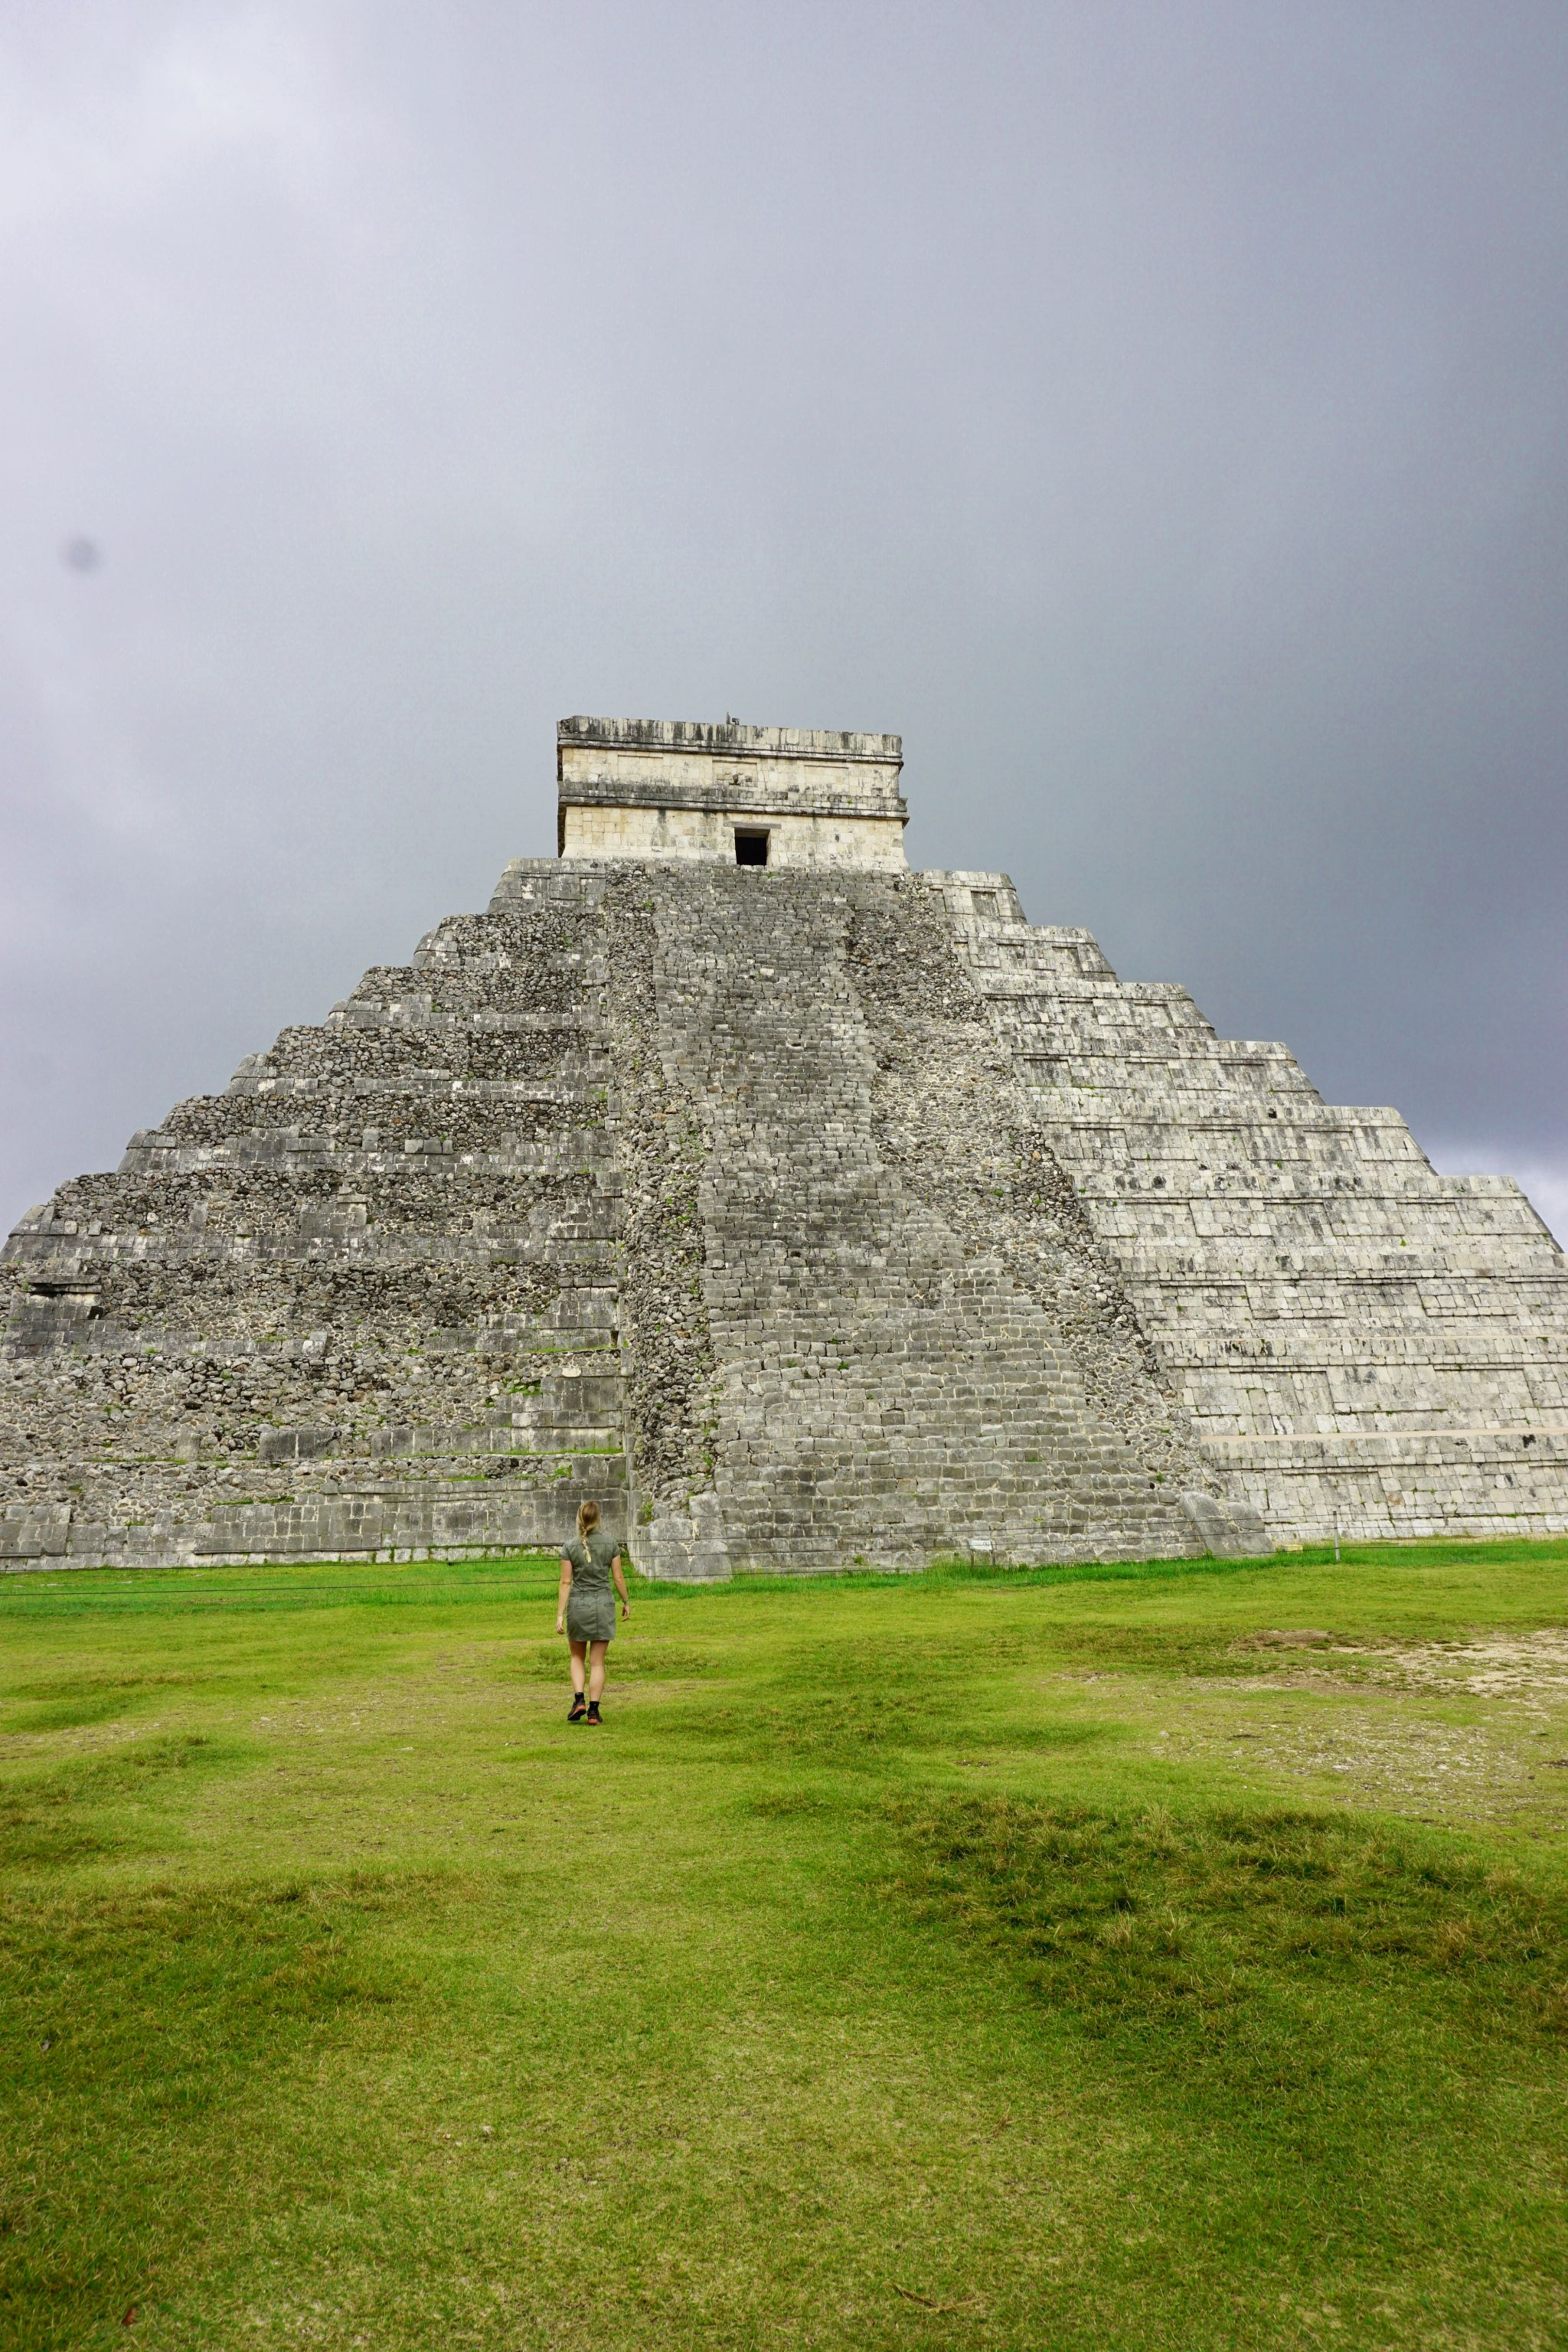 Admiring the impressive Pyramid of Kukulkan in Chichen Itza